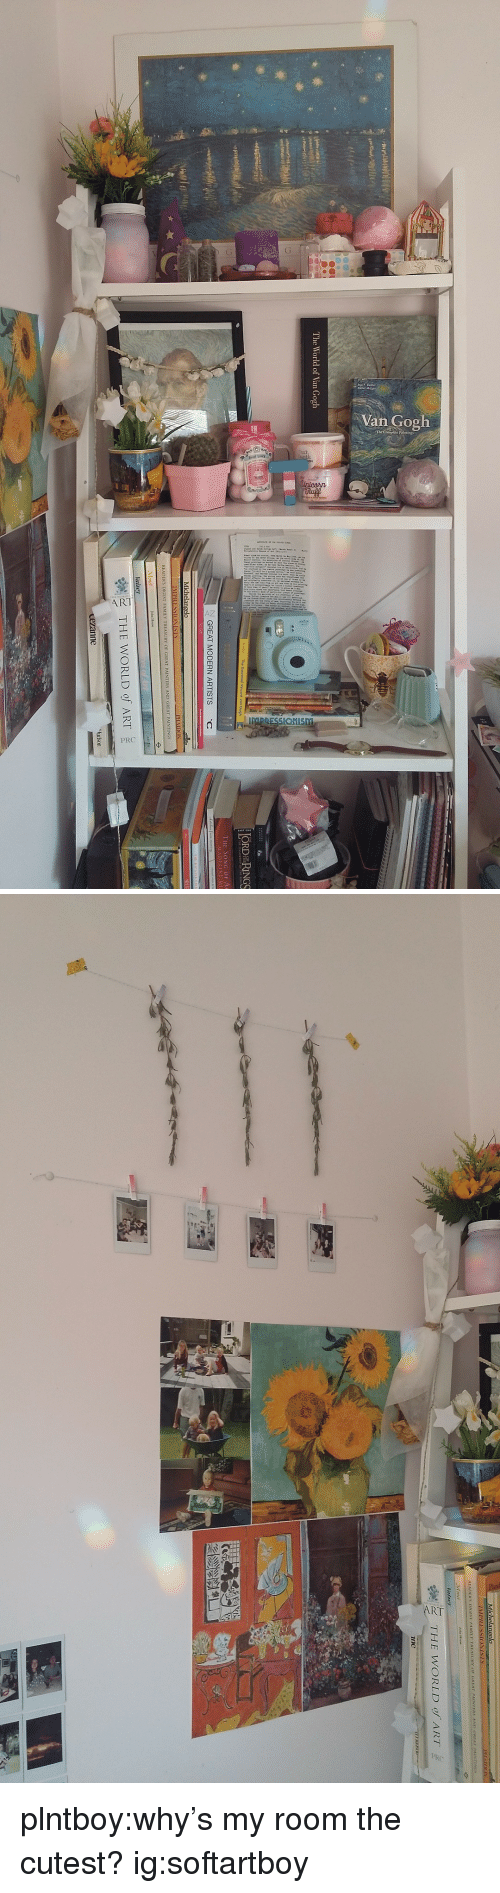 Michelangelo, Paintings, and Tumblr: The World of Van Gogh  THE SONG OF A  GREAT MODERN ARTISTS  Michelangelo  READER'S DIGEST FA  TREASURY OF GREAT PAINTERS AND GREAT PAINTINGS  Jeha House  THE WORLD of ART-  ludson   Ore THE WORLD of ART plntboy:why's my room the cutest? ig:softartboy